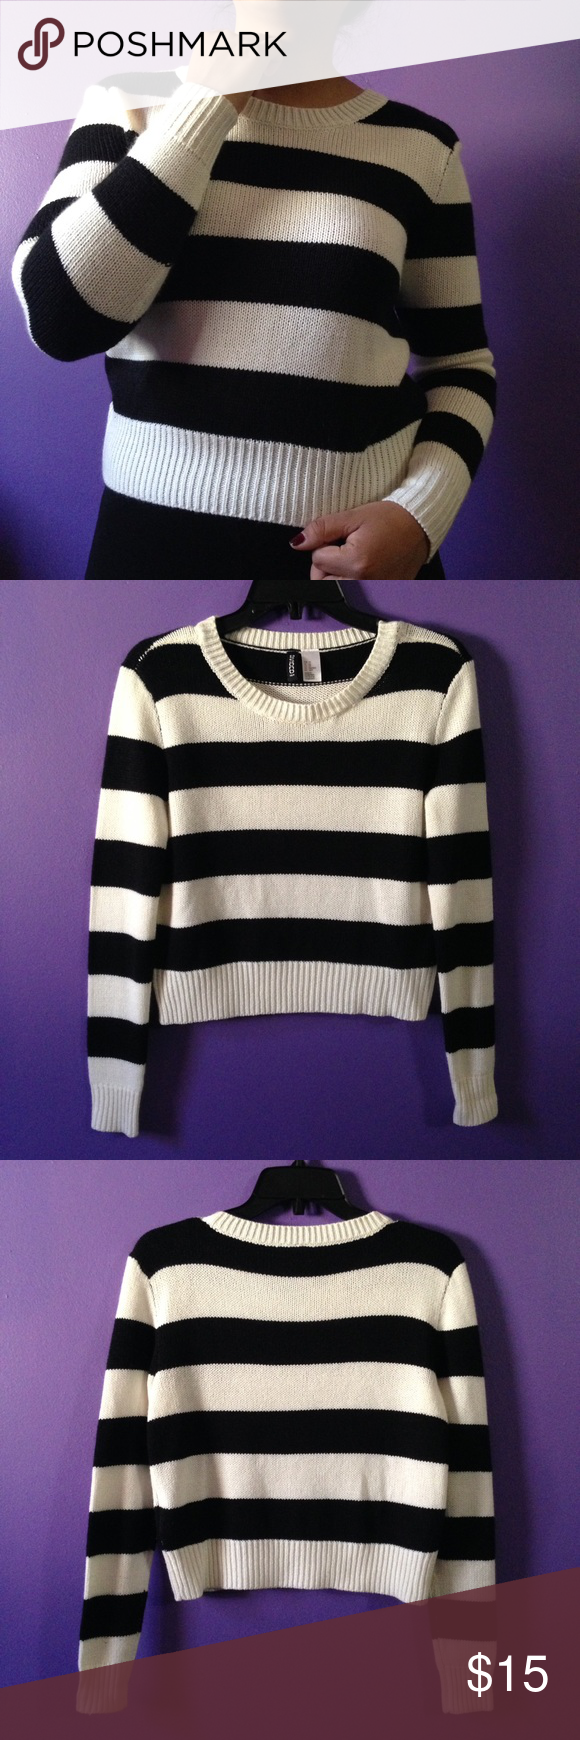 Striped Knit Pullover This sweater has a semi cropped fit and it also a bit tight on the arms. Worn only twice & has no stains or rips. The color is more cream than white H&M Sweaters Crew & Scoop Necks